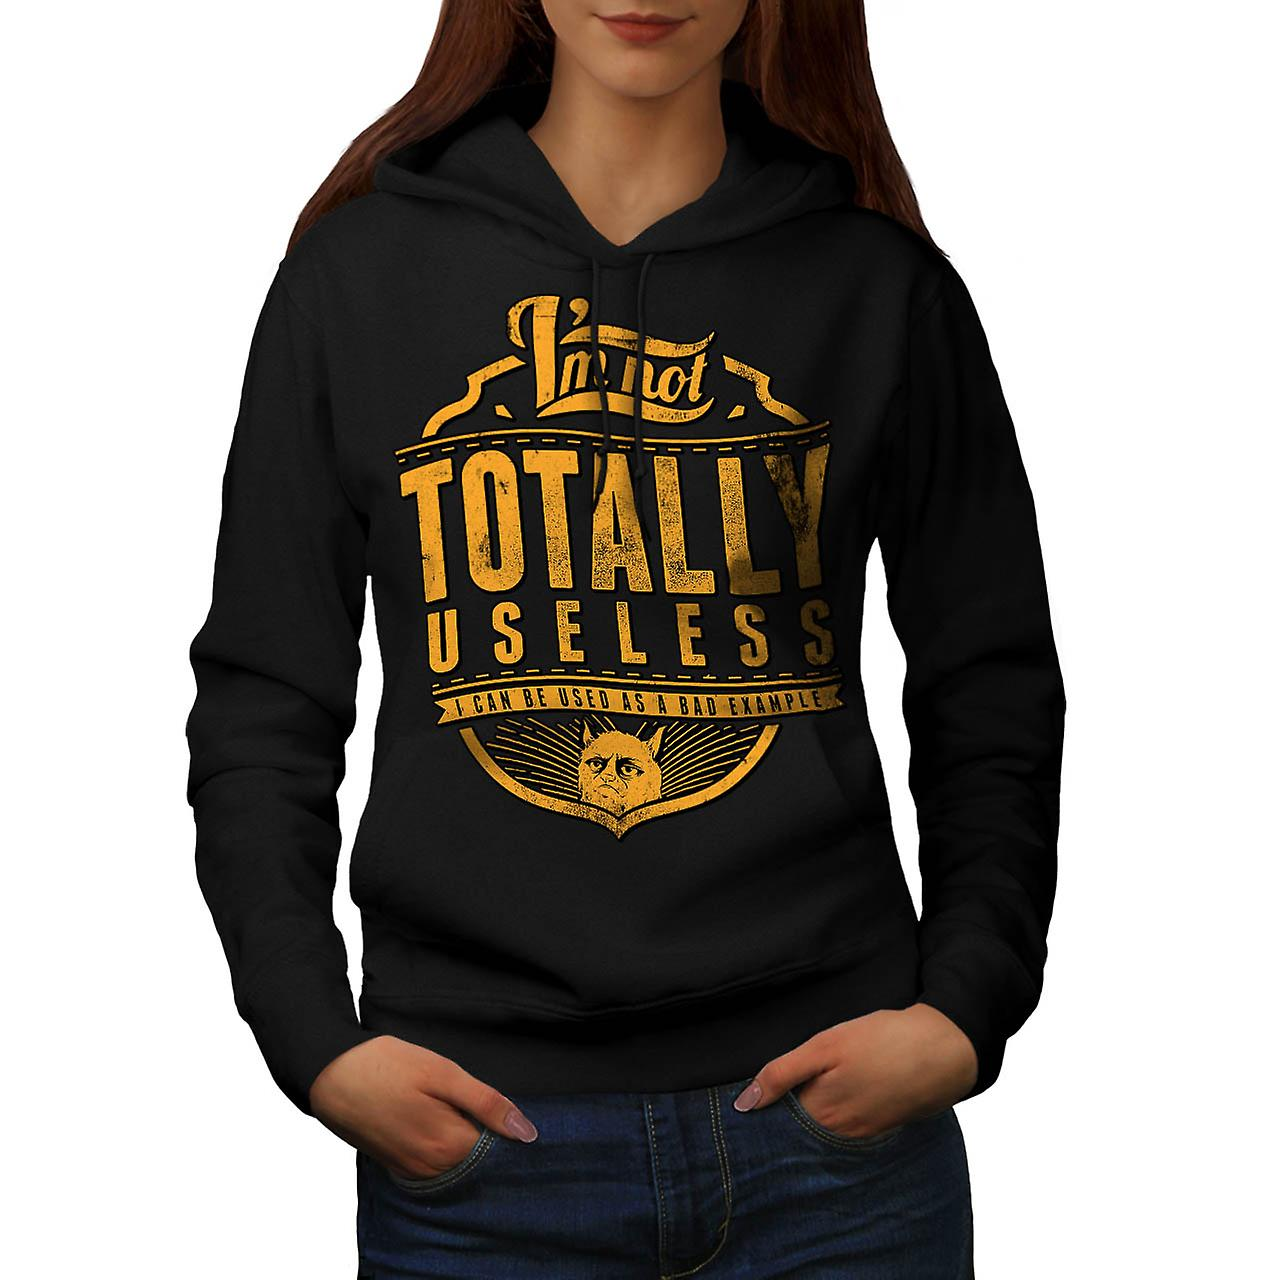 Grumpy Cat Useless Bad Example Women Black Hoodie | Wellcoda